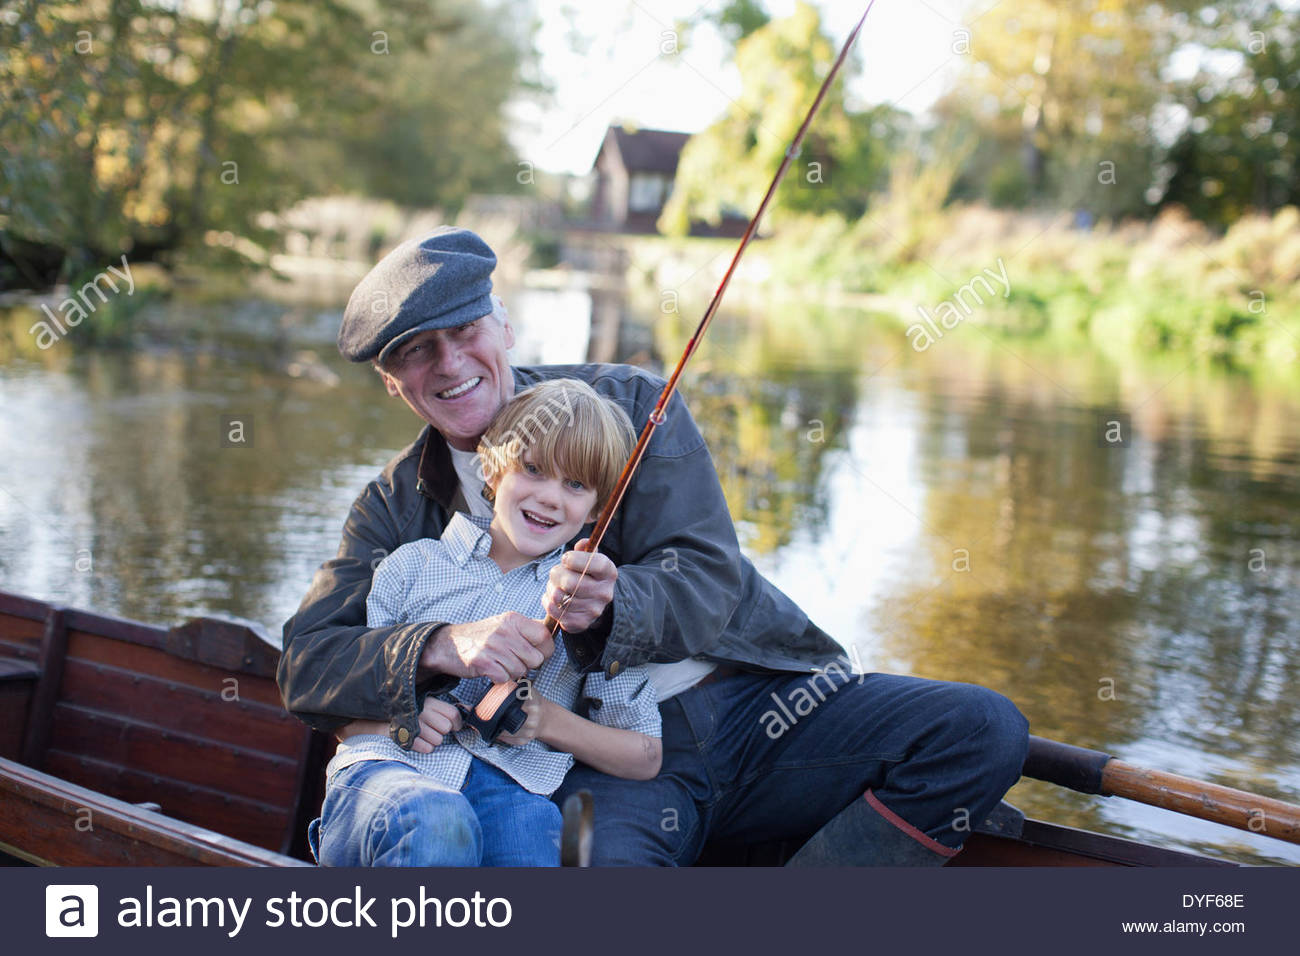 Grandfather and grandson fishing in boat - Stock Image